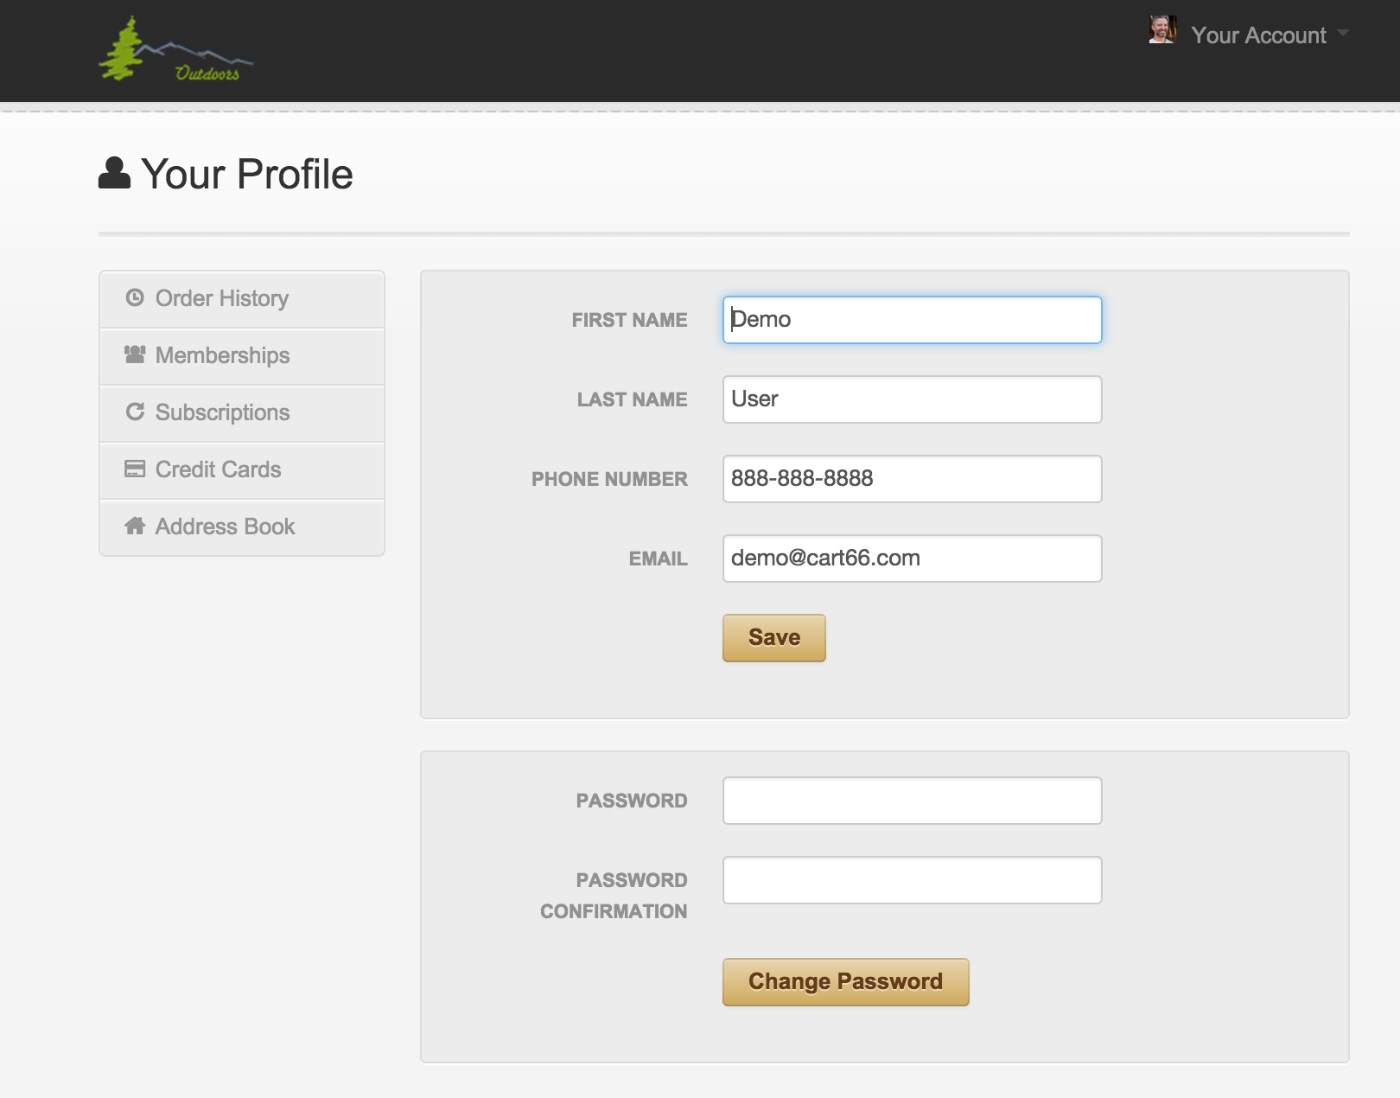 Cart66 customer portal secure profile